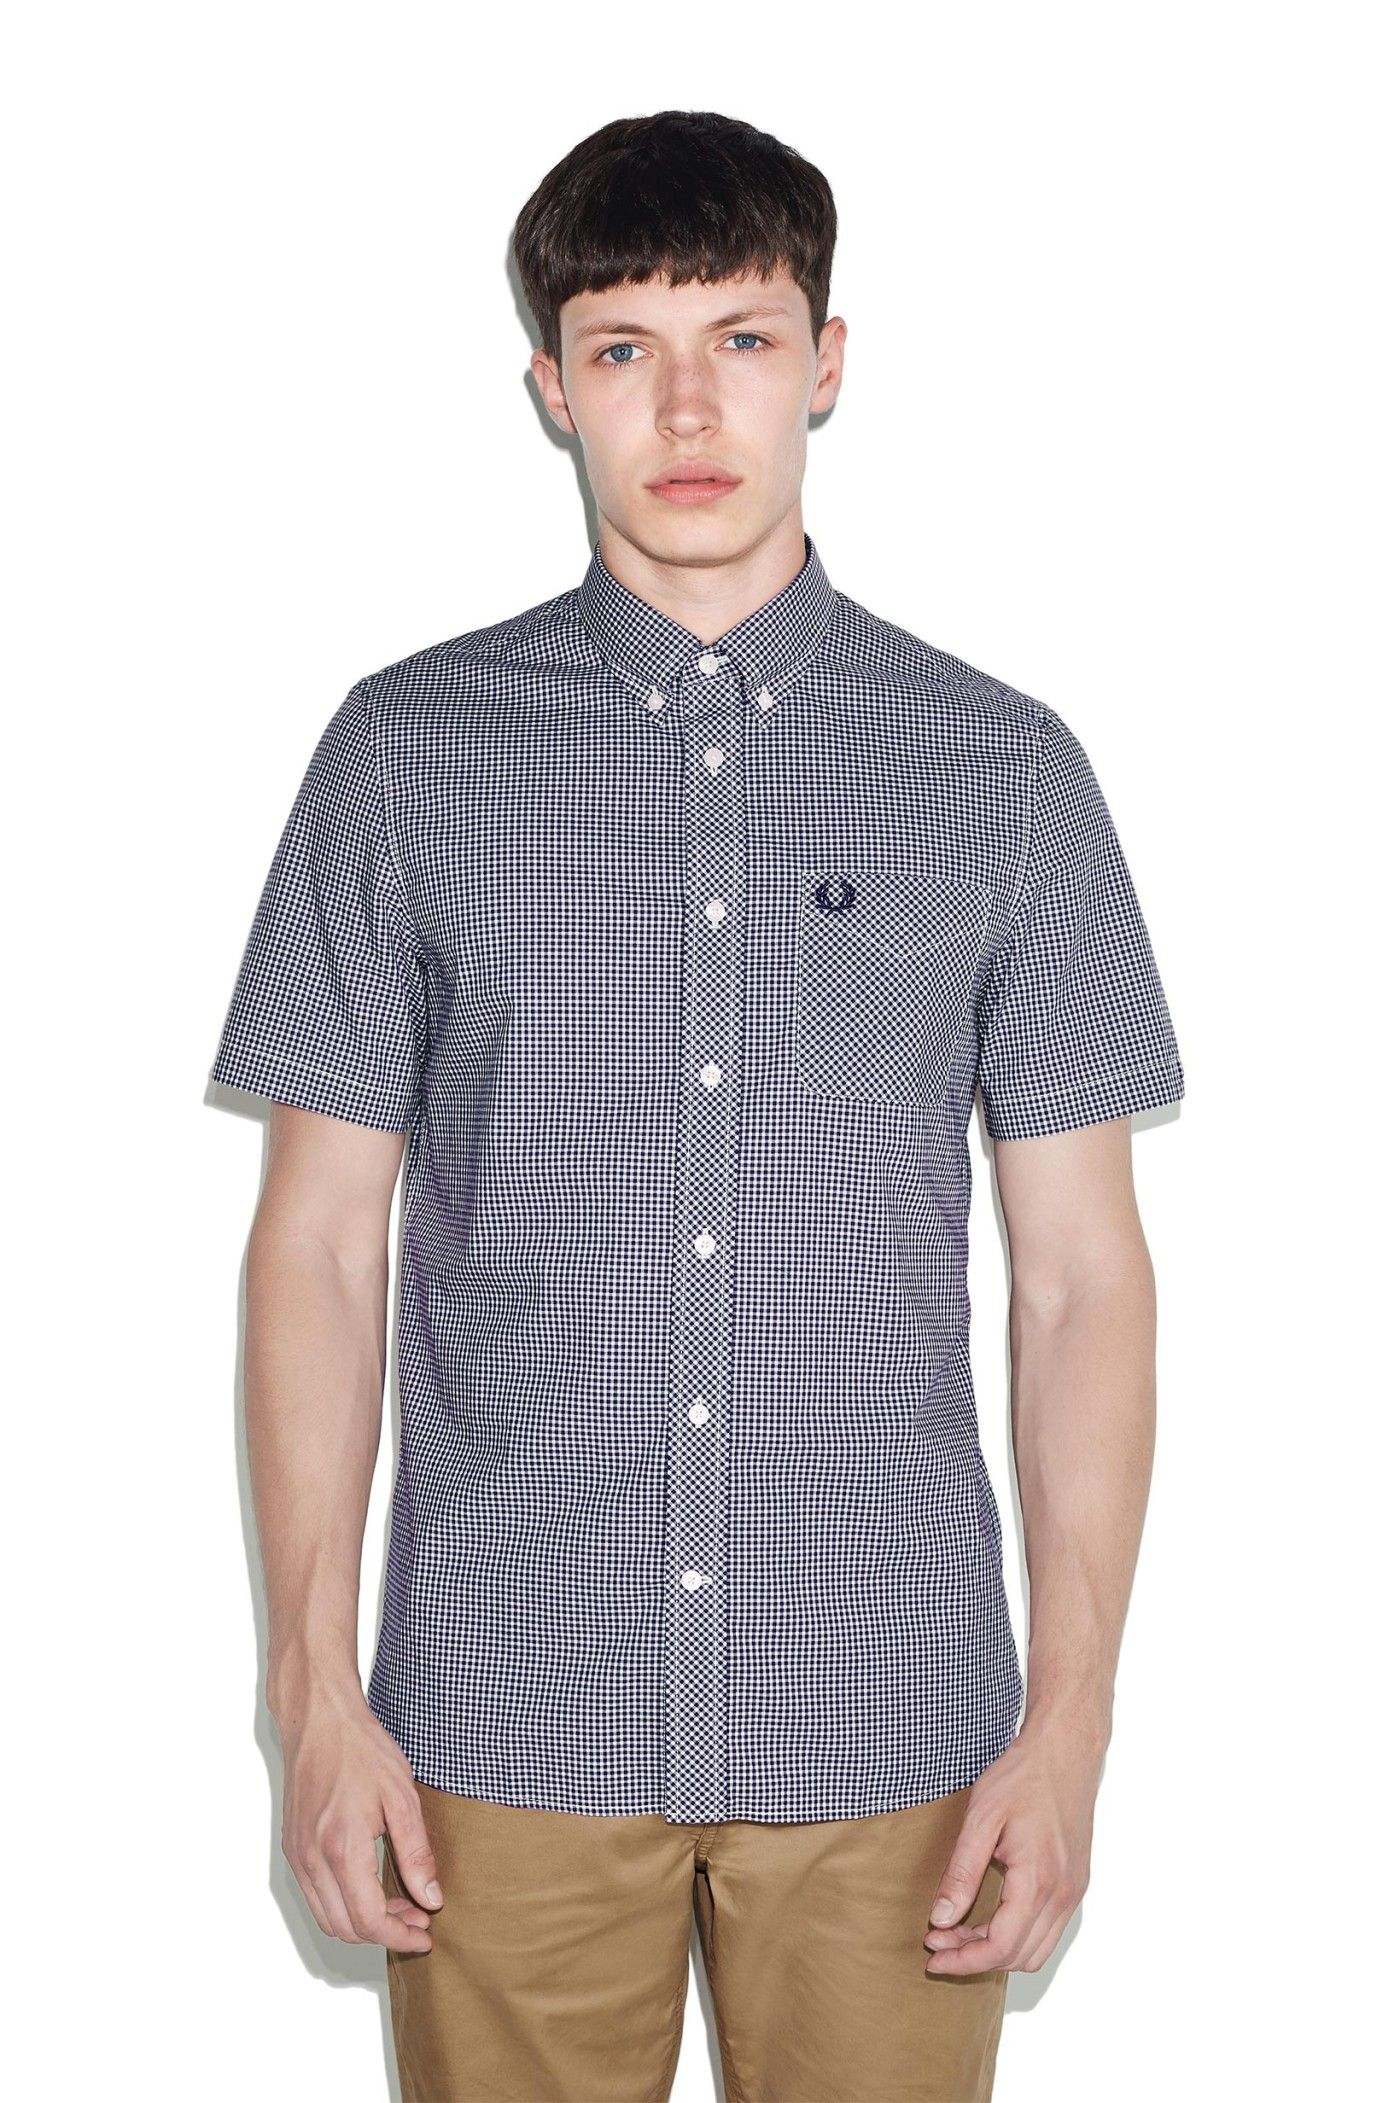 337ed53a6 Fred Perry - Classic Gingham Short Sleeve Shirt Medieval Blue ...